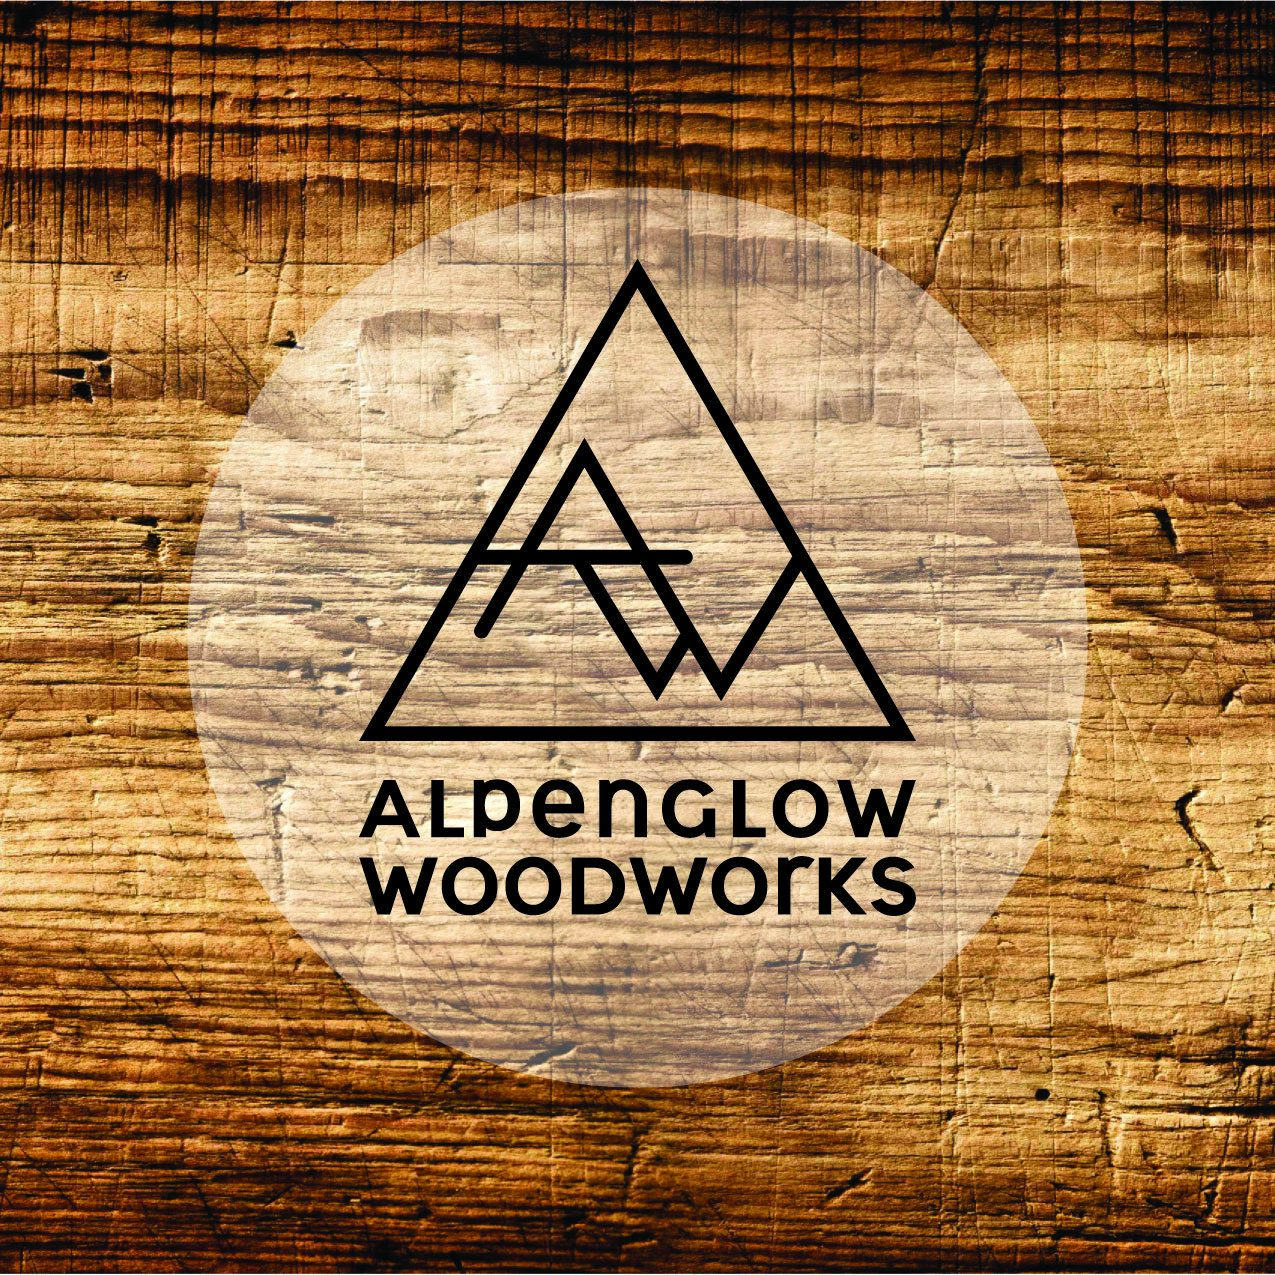 Alpenglow Woodworks